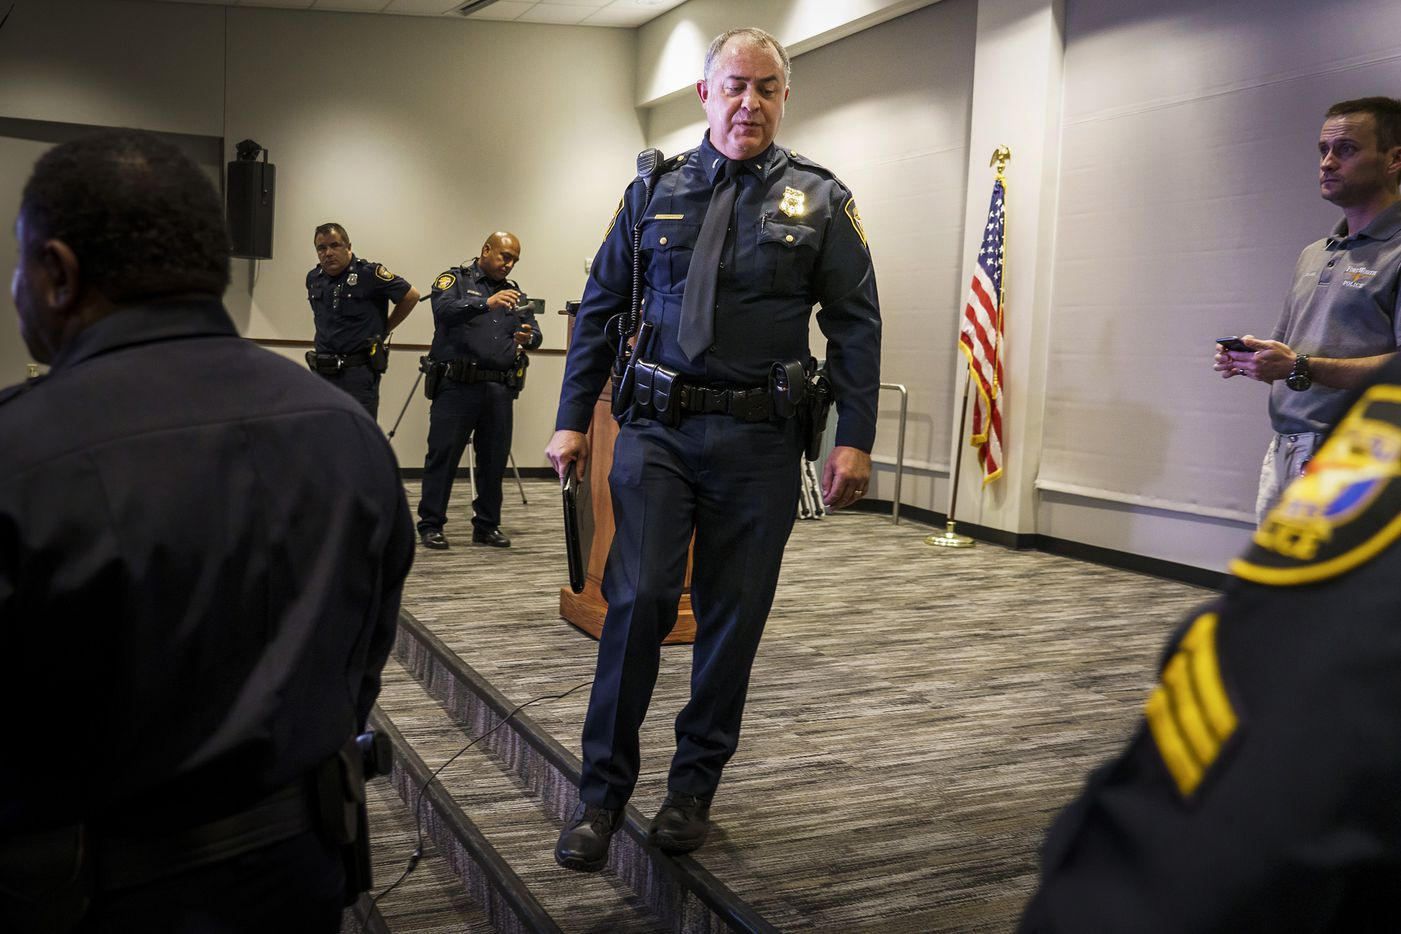 Fort Worth police Lt. Brandon OÕNeil departs after addressing a news conference regarding the shooting of Atatiana Jefferson at the Bob Bolen Public Safety Complex on Sunday, Oct. 13, 2019, in Fort Worth.